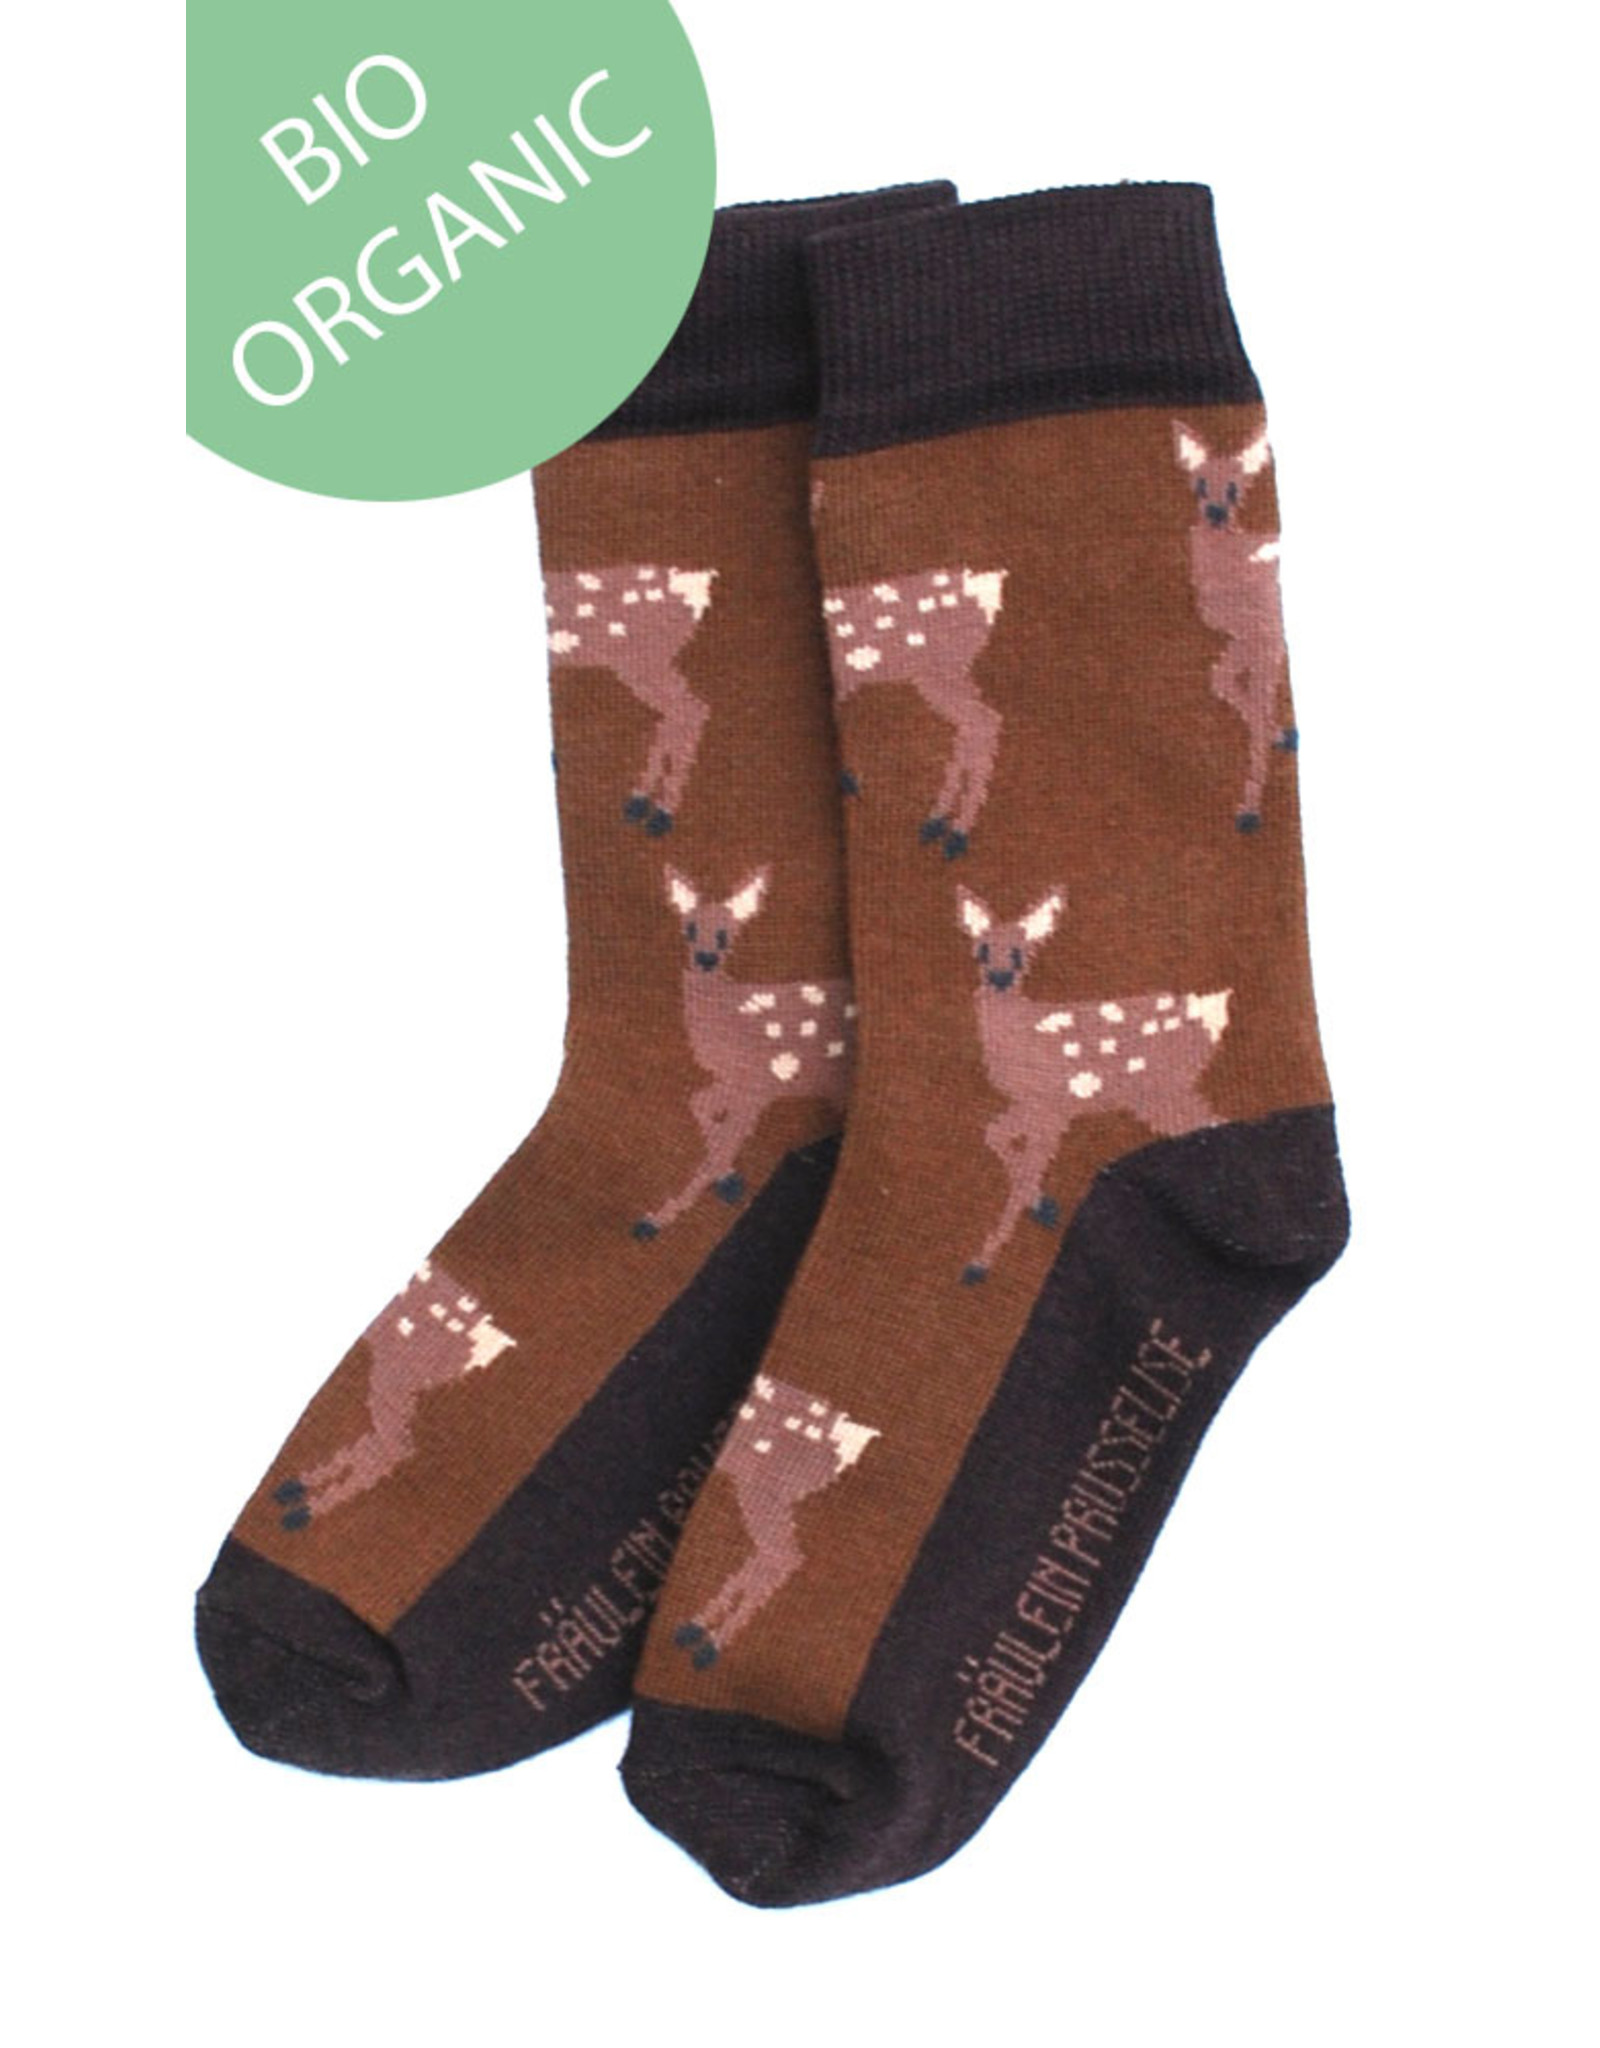 Fräulein Prusselise Children's socks - bambi